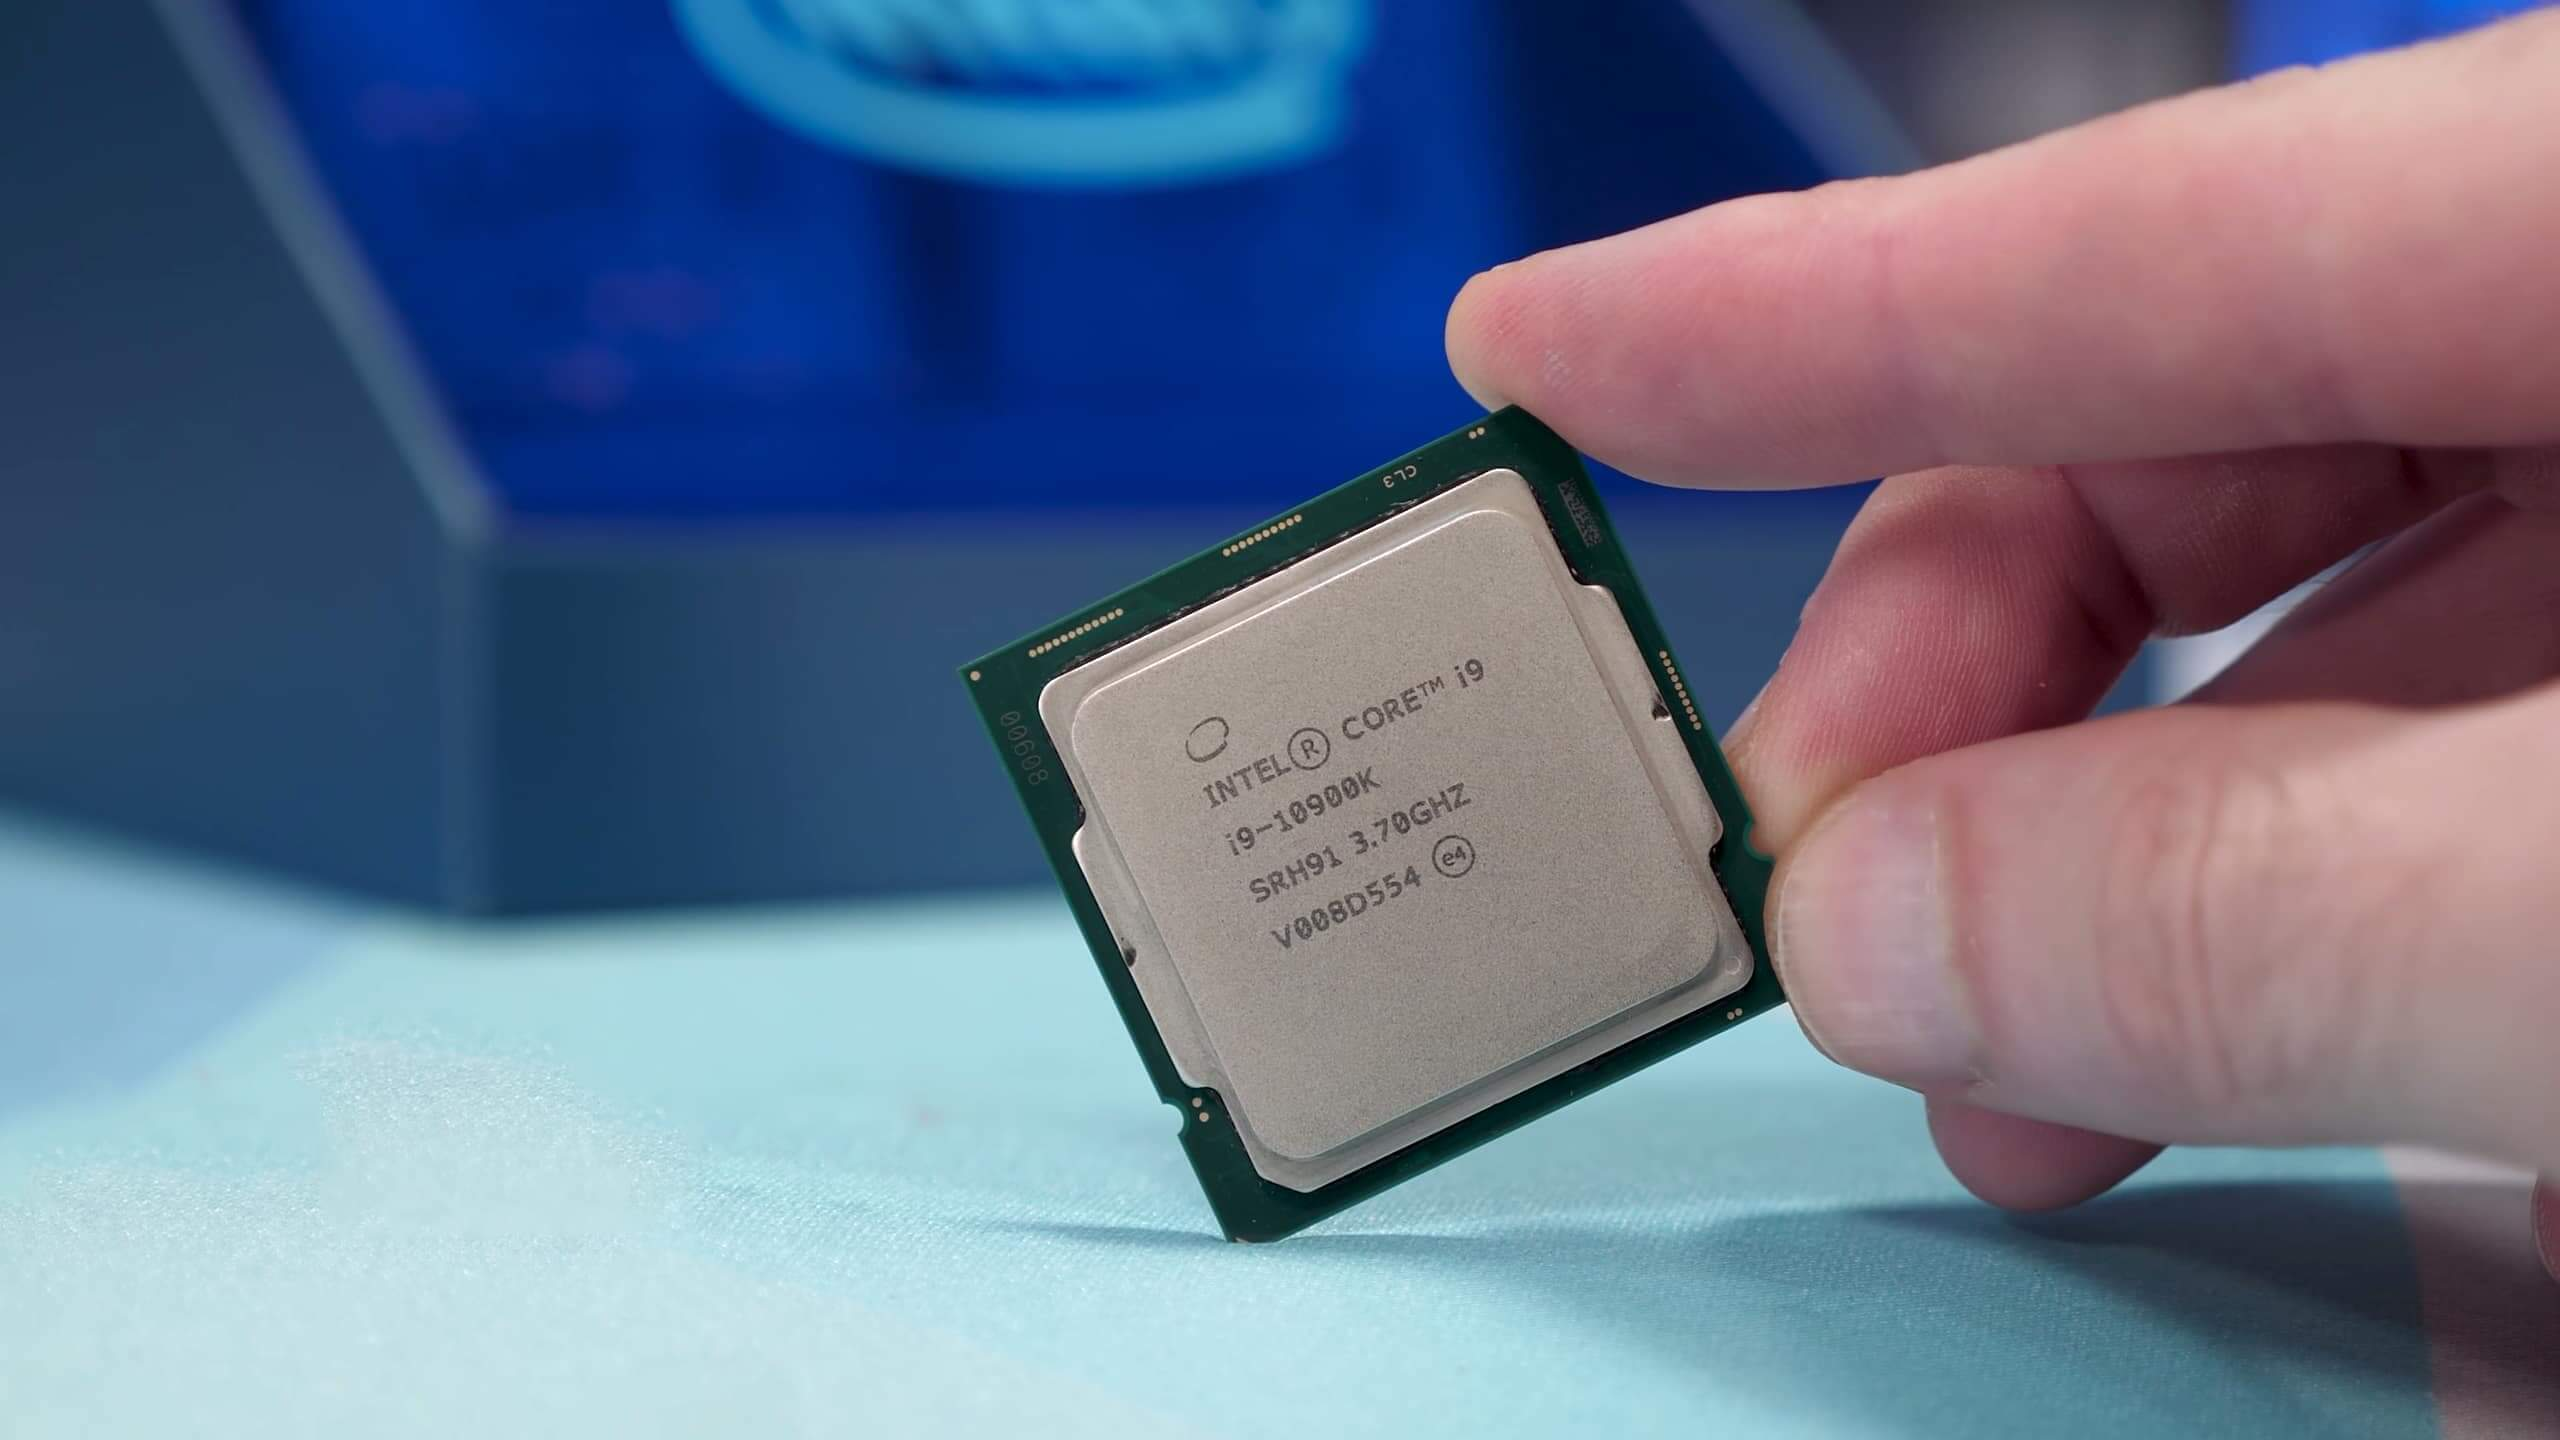 """Intel's Flagship Core i7-6950X """"Broadwell-E"""" Specifications Confirmed, All Four SKUs Detailed"""